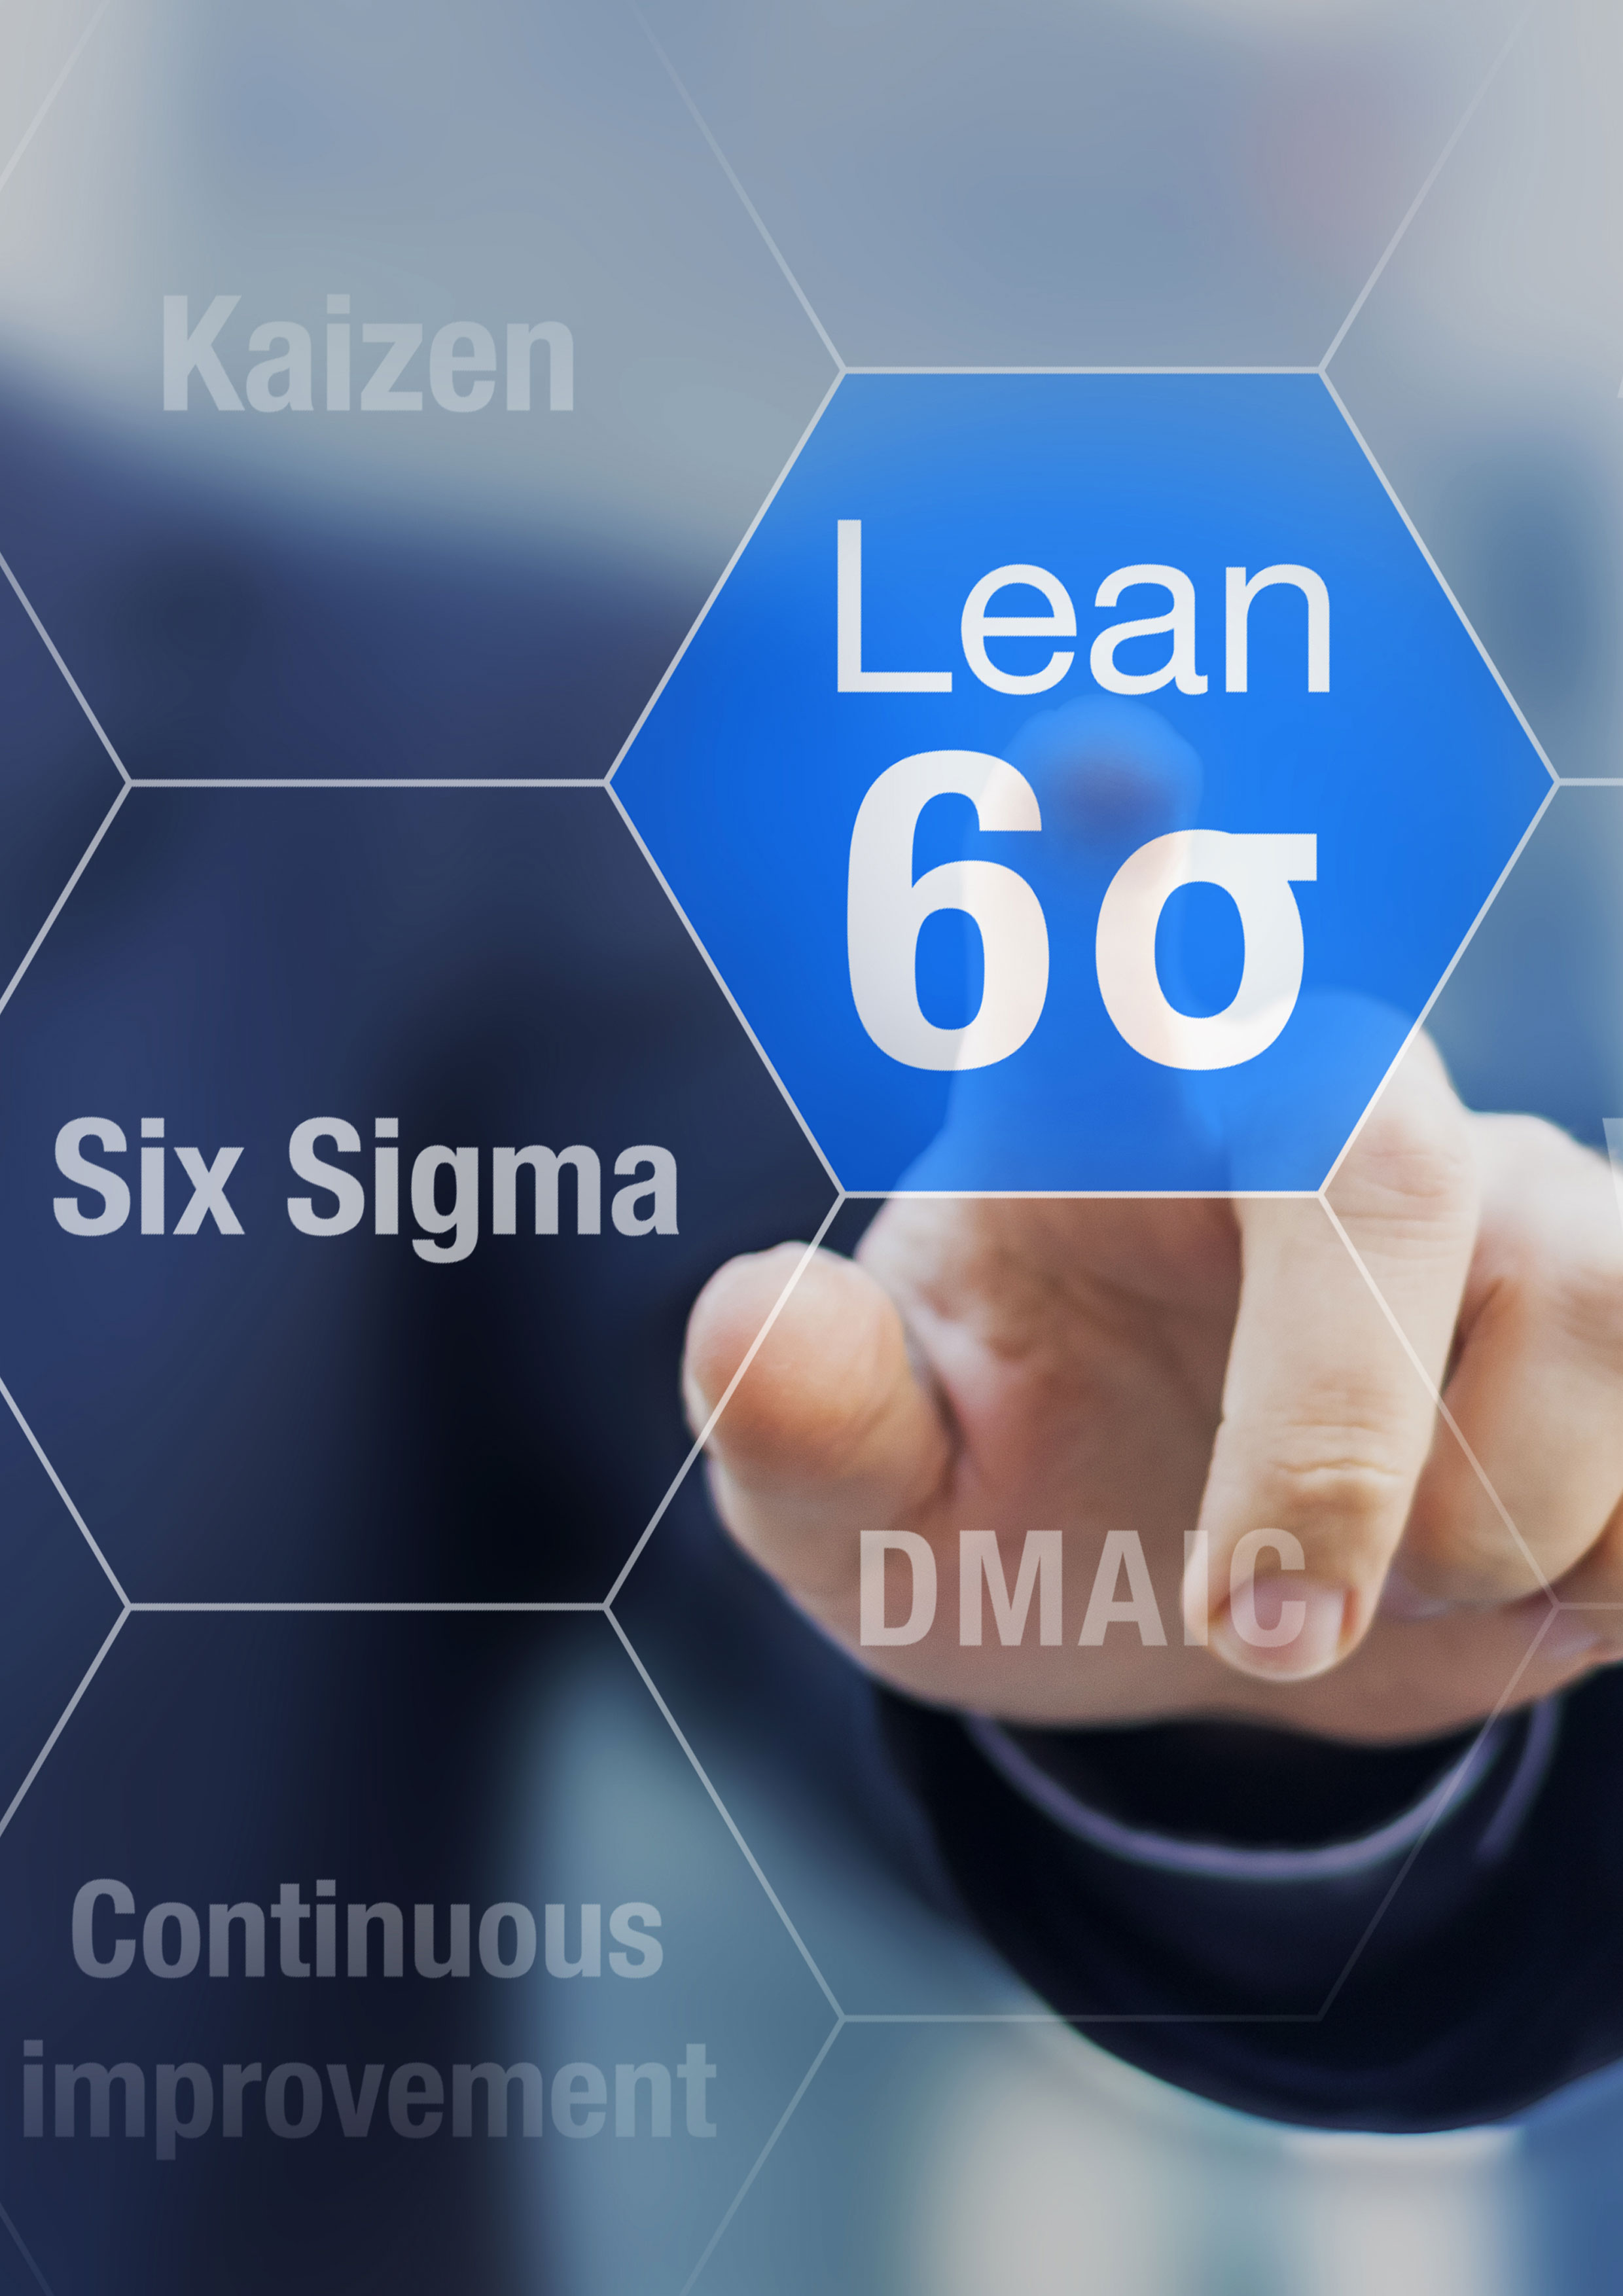 lean six sigma research paper Implementing lean manufacturing principles in a manufacturing environment by rodney s rogstad a research paper submitted in pmiial fulfillment of the.